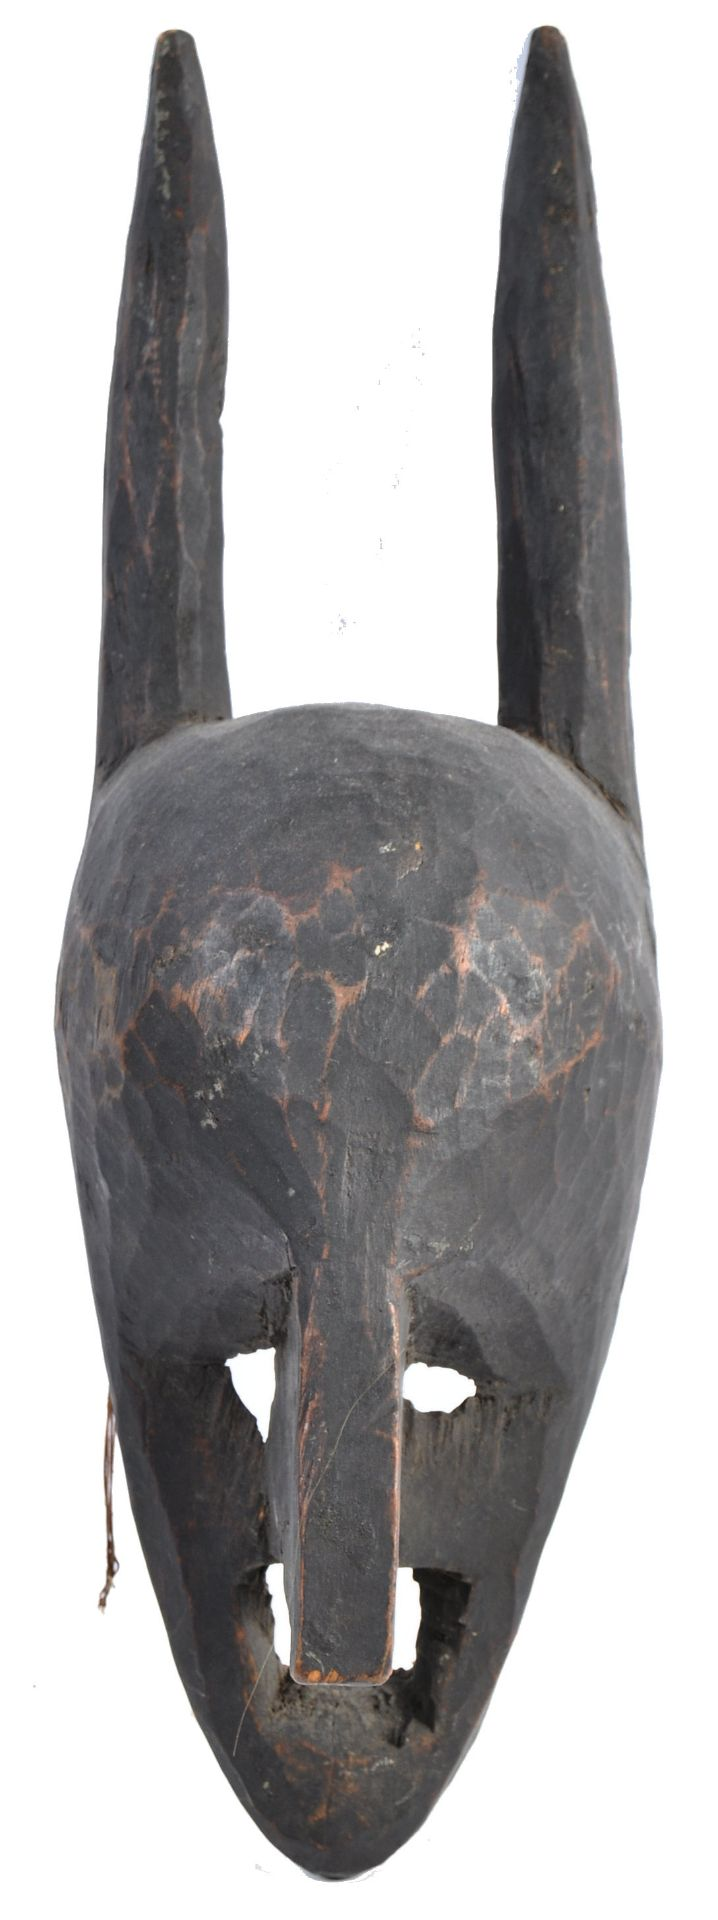 Los 381 - TRIBAL ANTIQUITIES - 20TH CENTURY AFRICAN BAMANA MASK